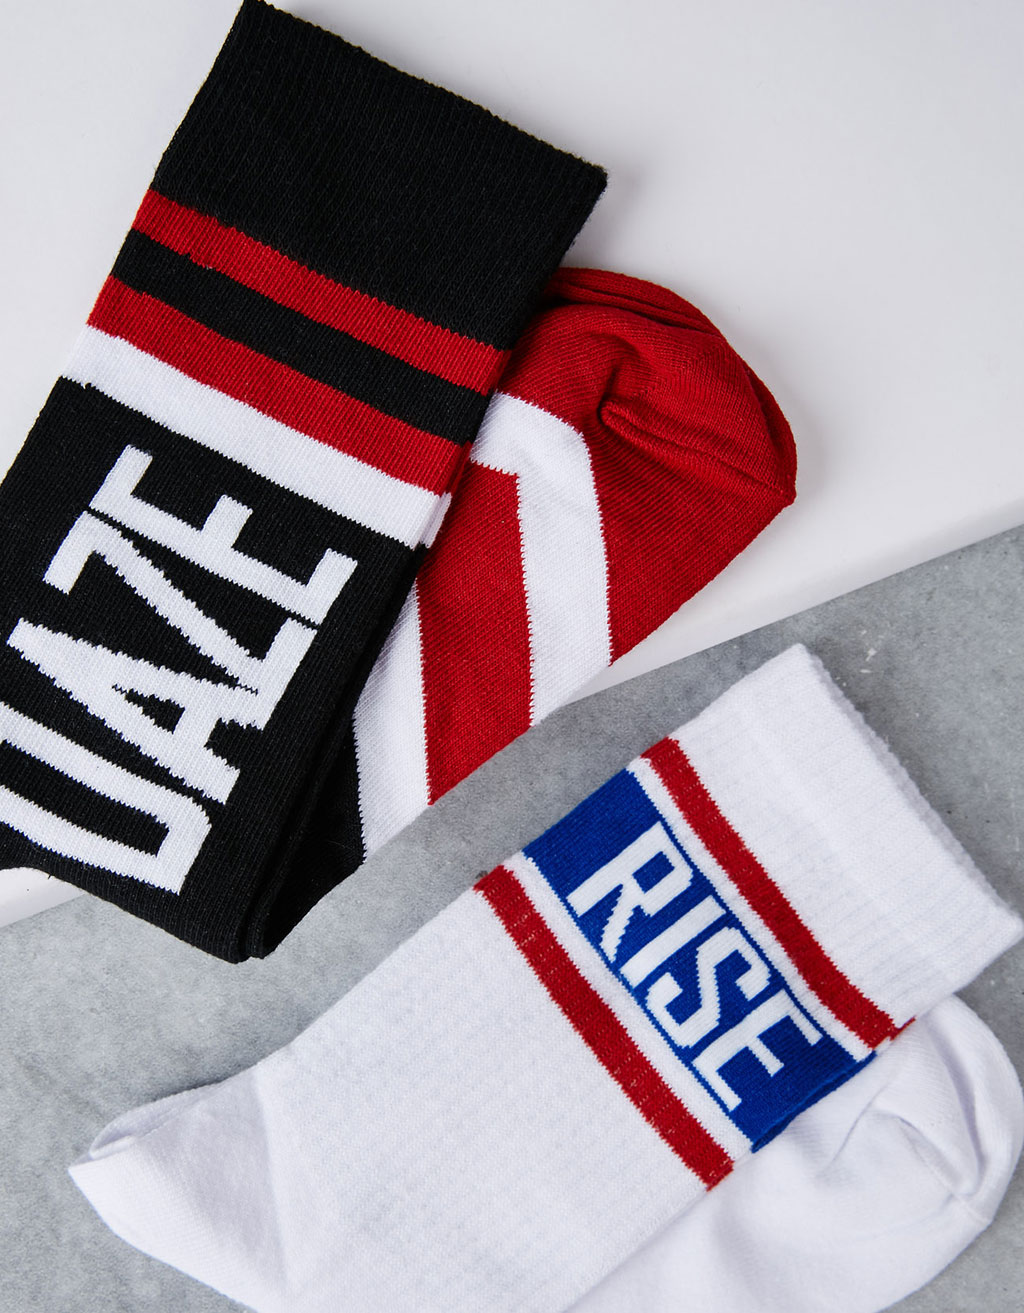 Set of retro basketball socks